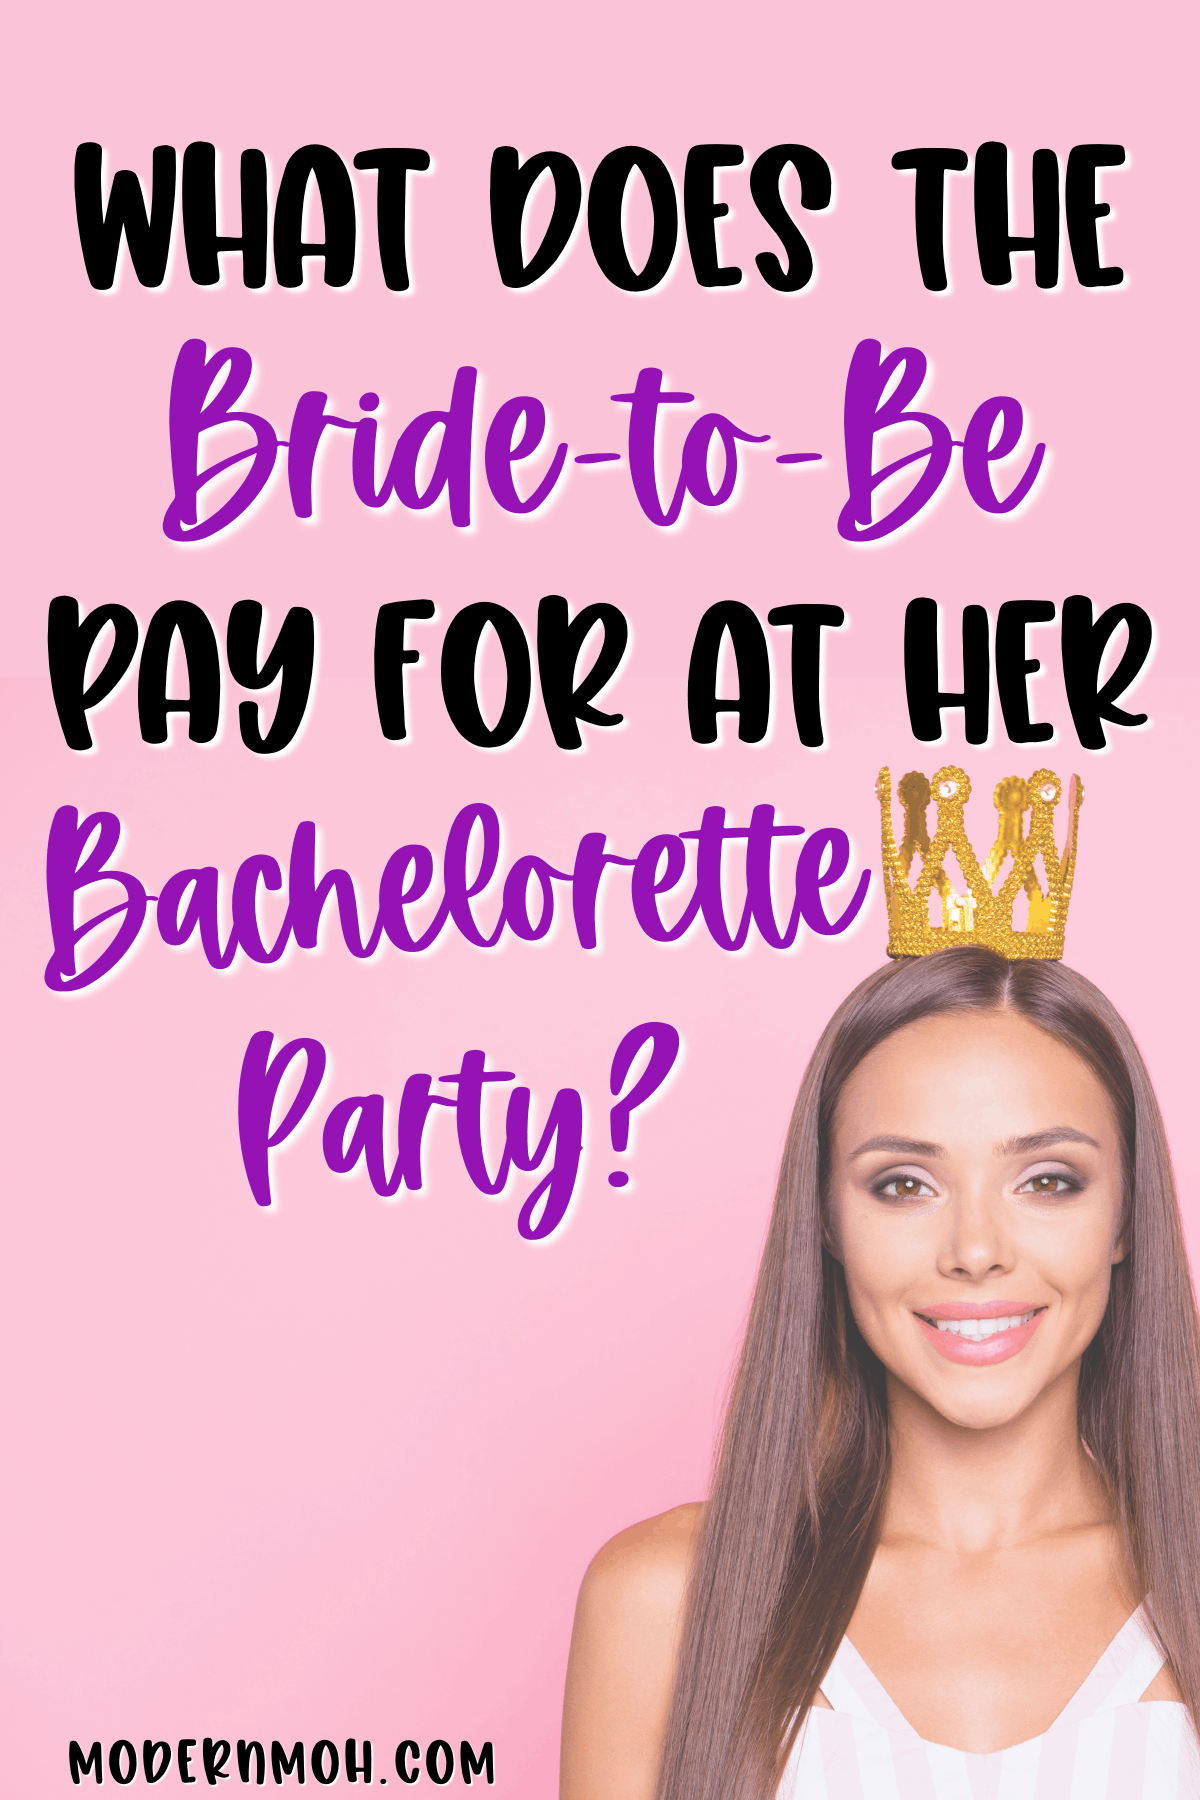 Who Pays for the Bachelorette Party?